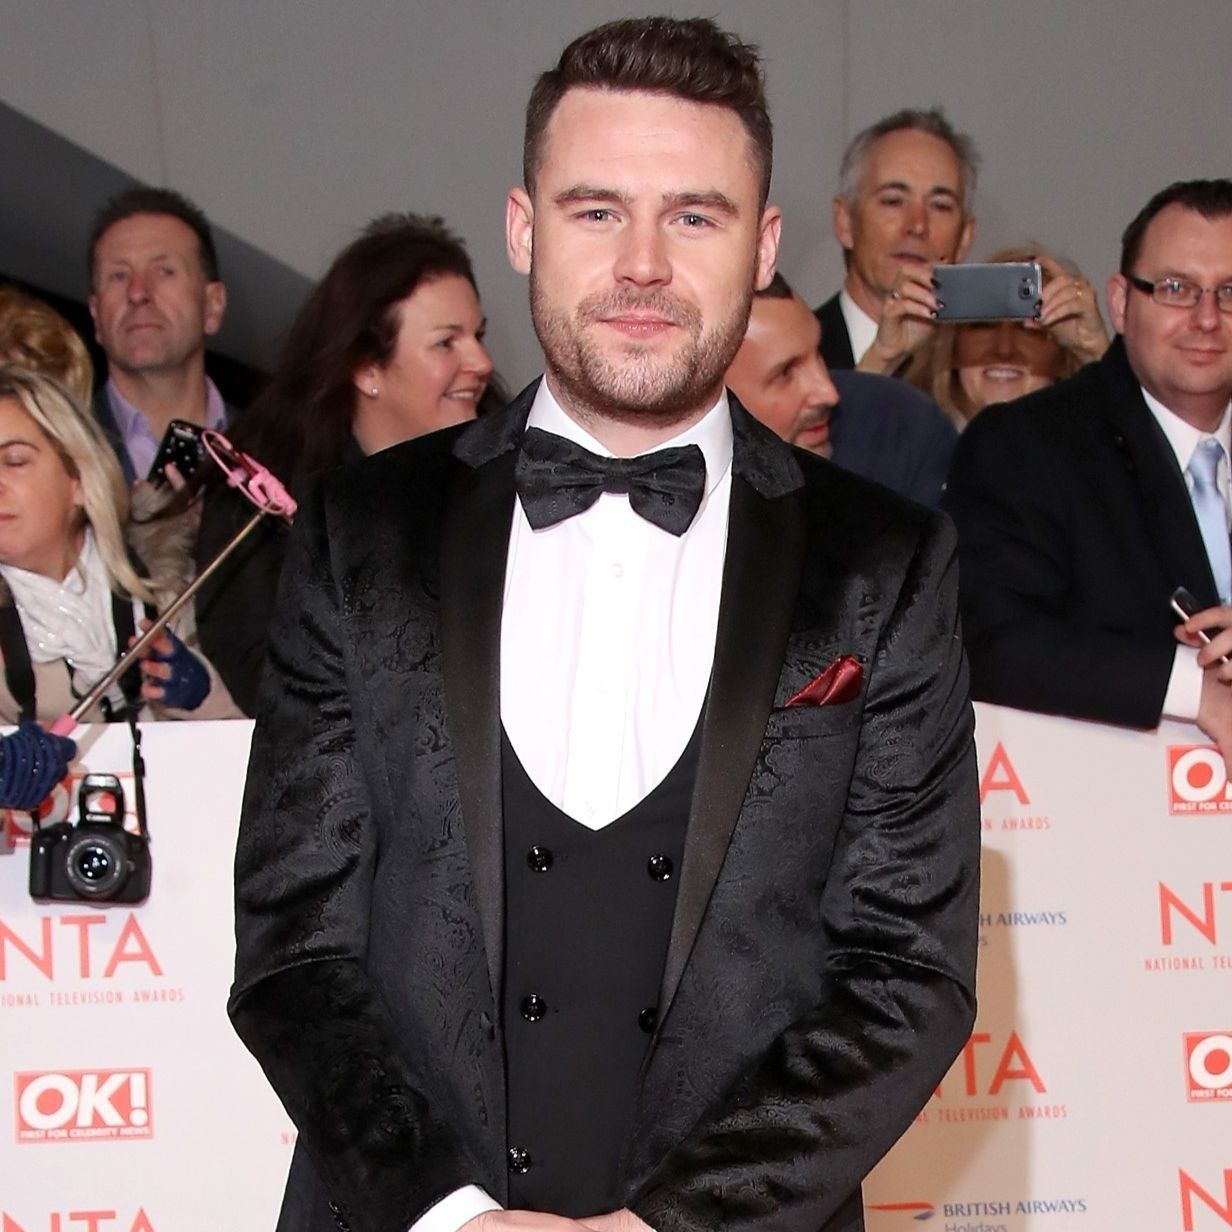 Emmerdale star Danny Miller addresses Ryan Hawley's exit and the end of Robron